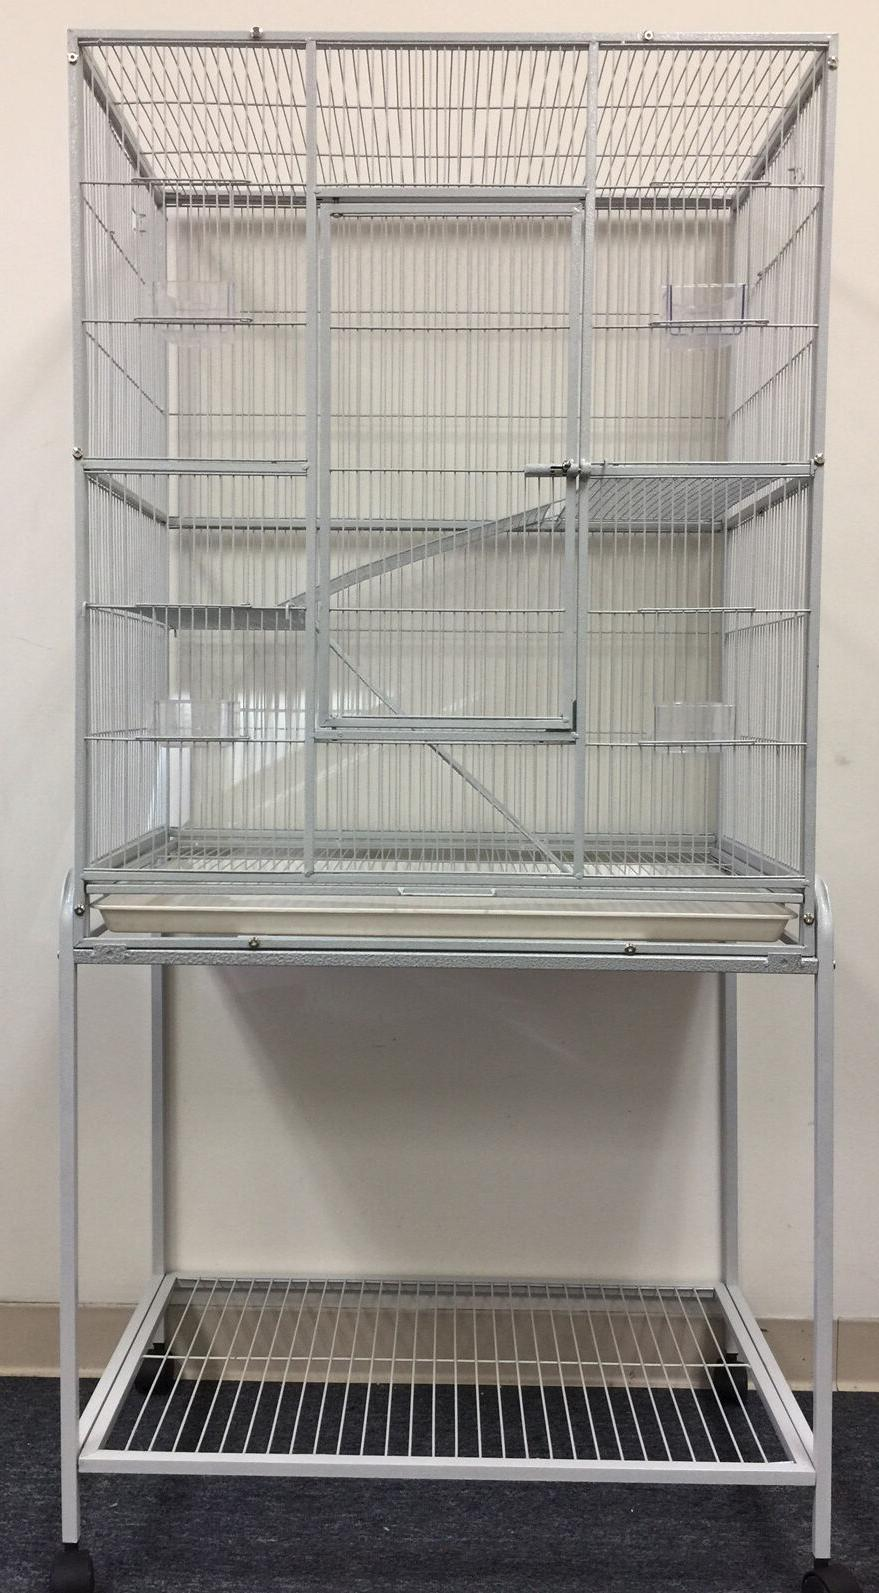 NEW Large 3 Level Chinchilla Sugar Glider Ferret Mice Rat Ca